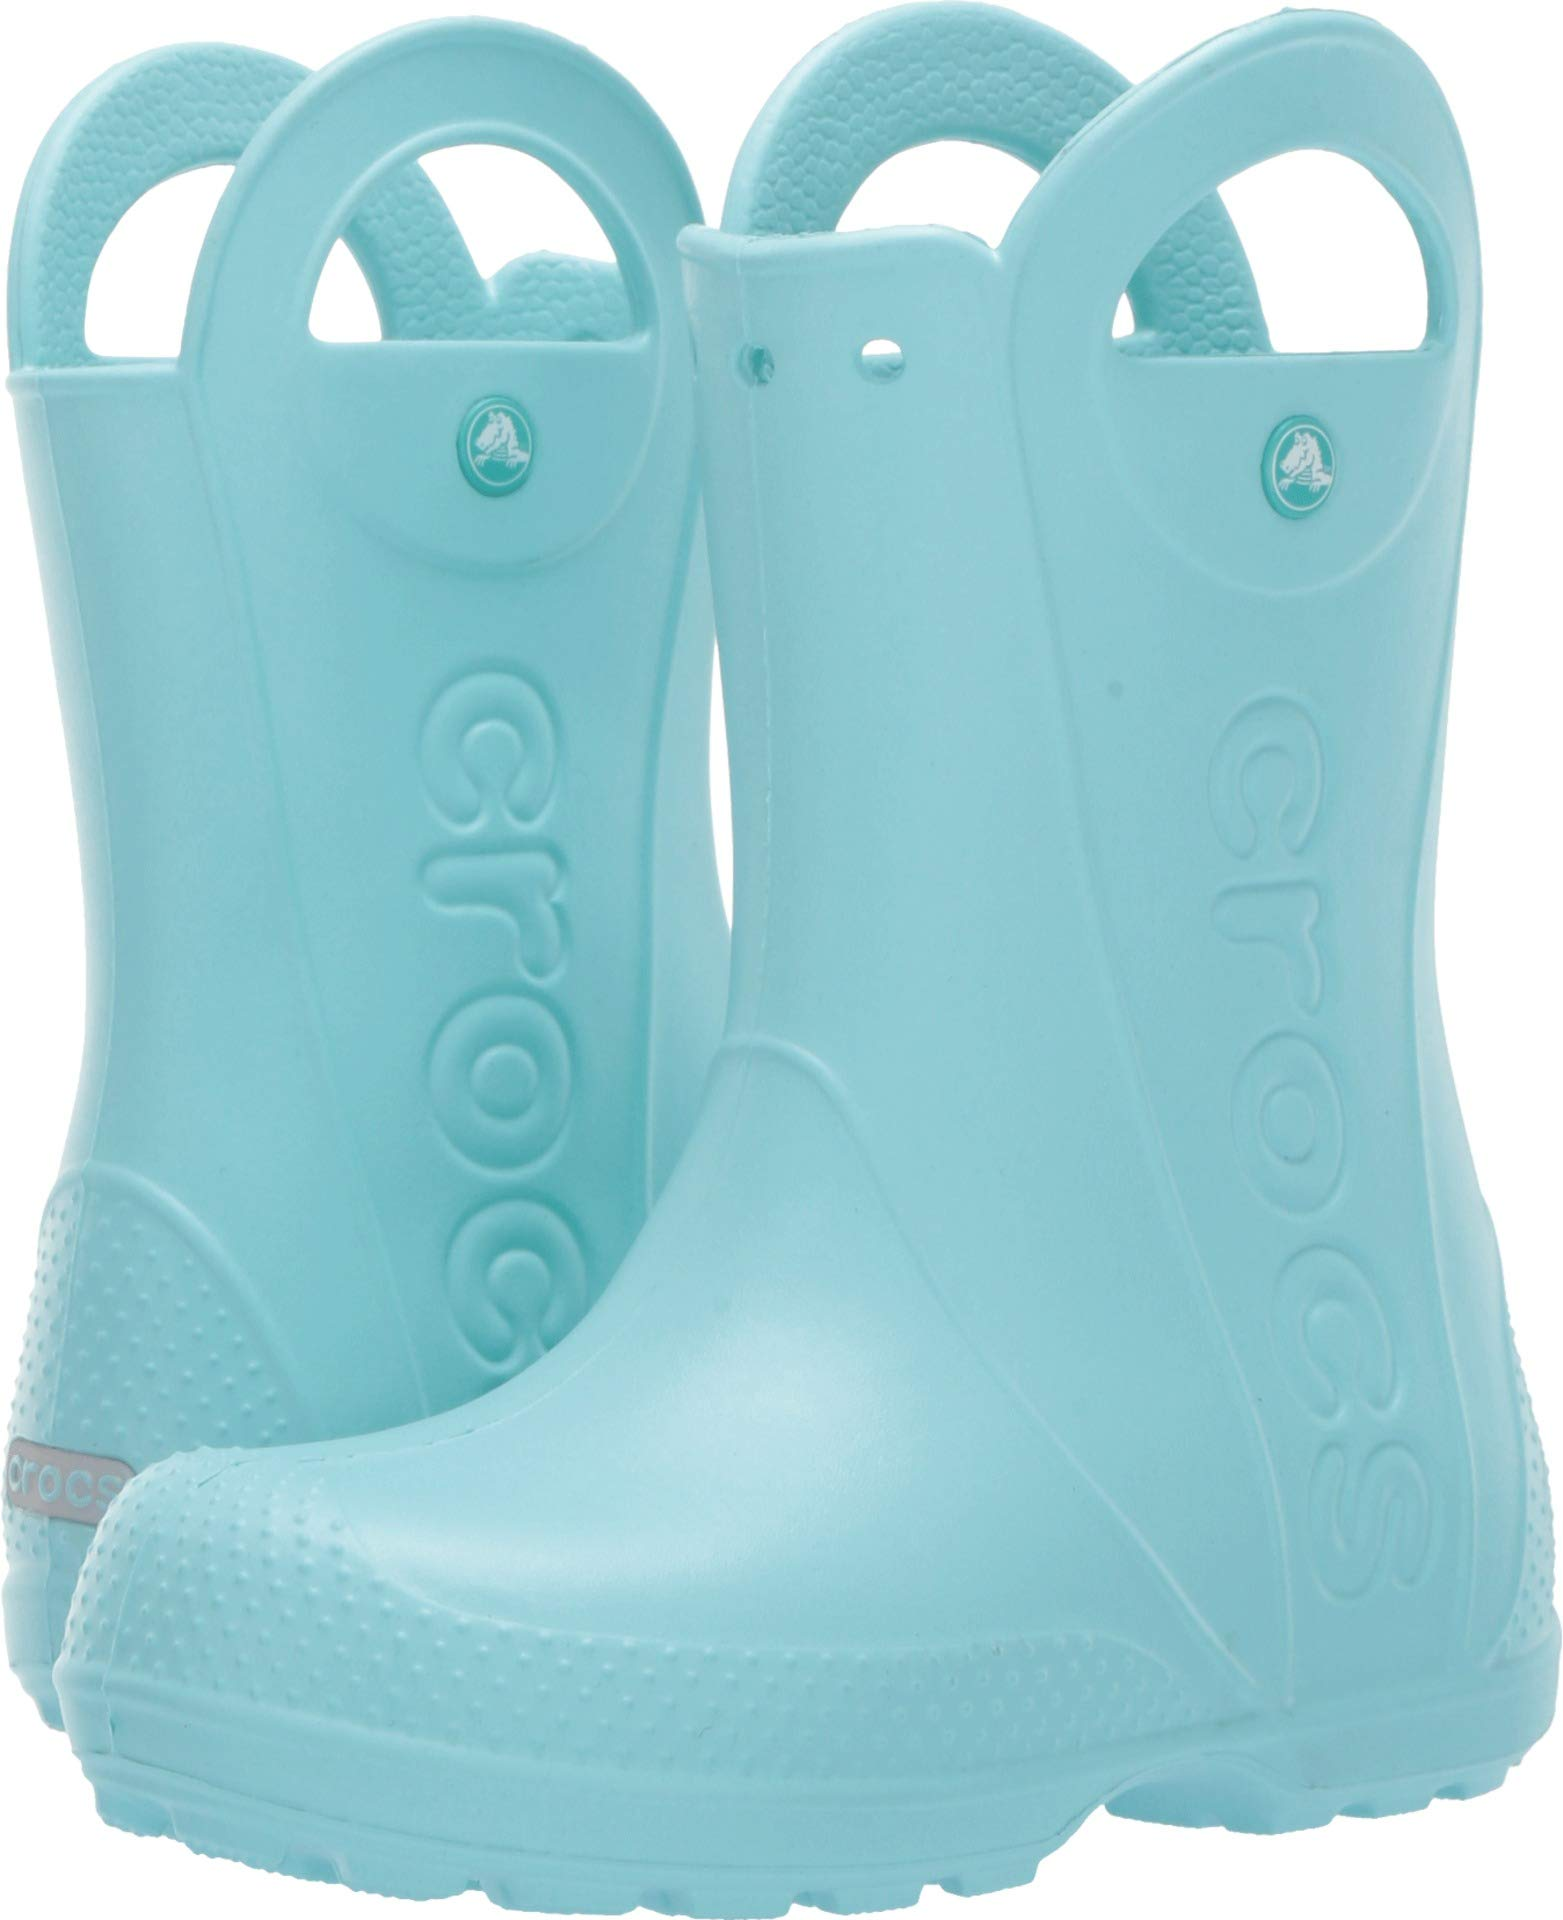 Crocs Kids' Handle It Rain Boot, ice blue, 10 M US Toddler